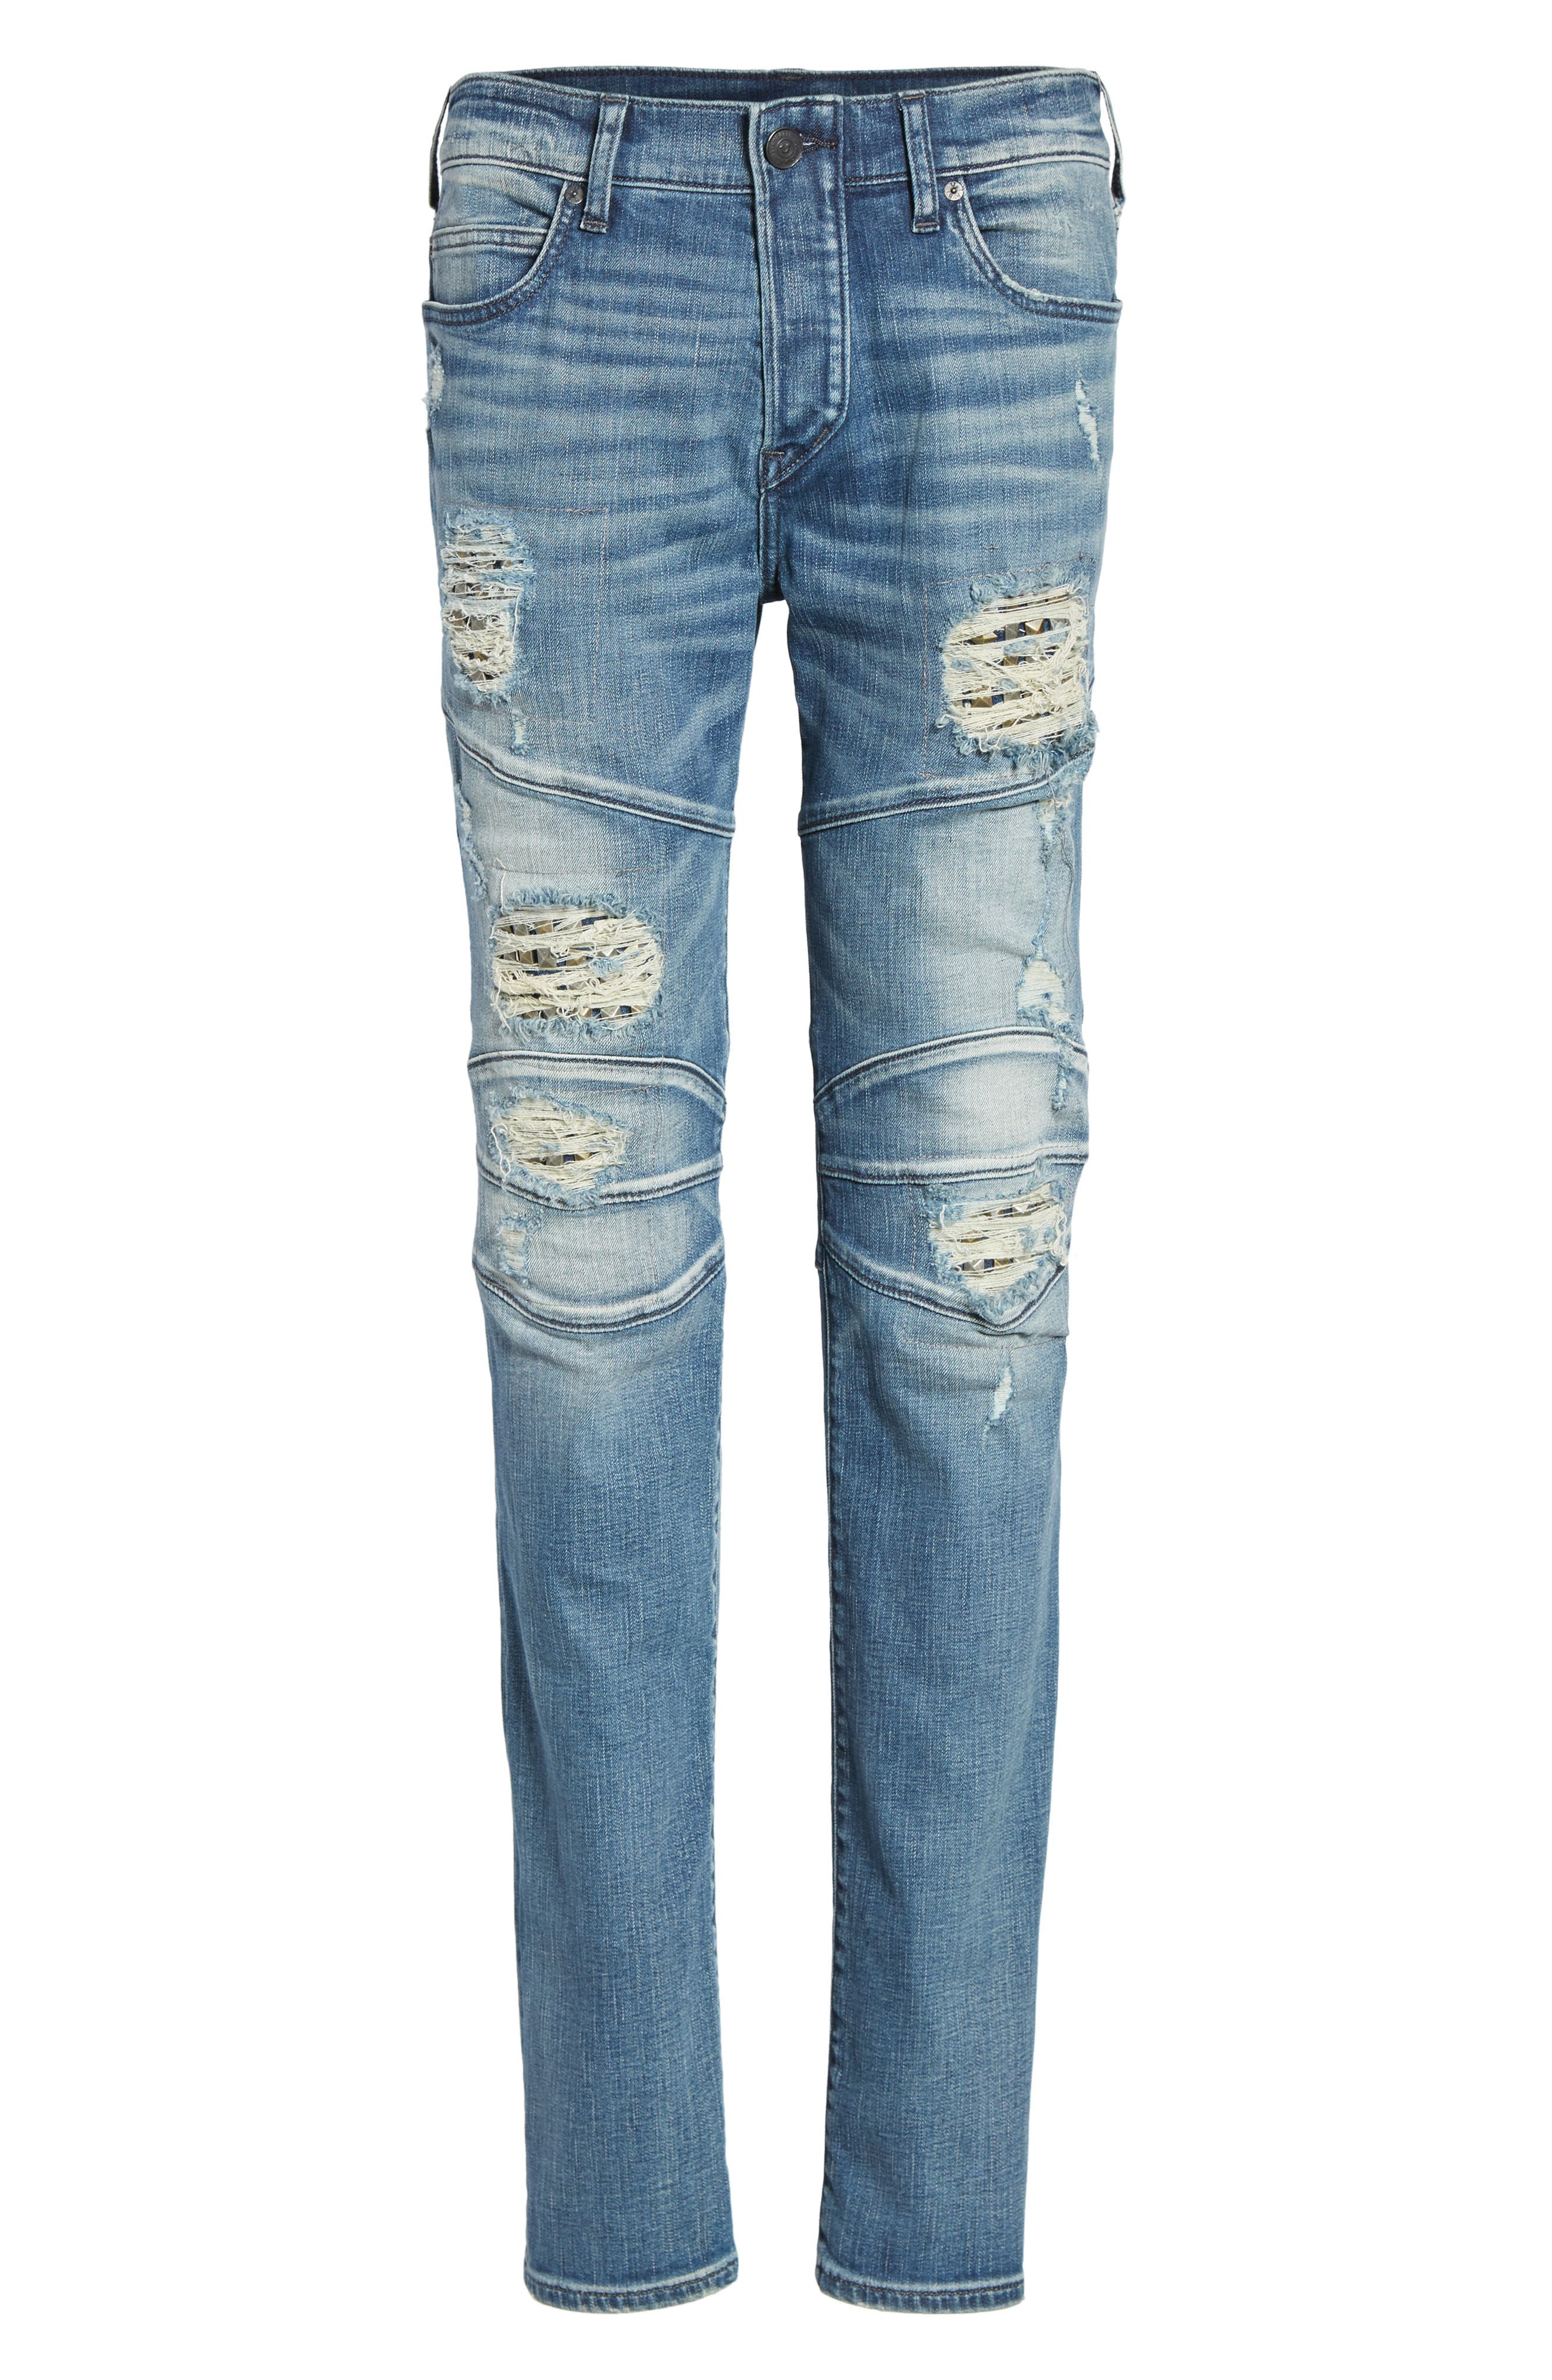 Rocco Skinny Fit Jeans,                             Alternate thumbnail 6, color,                             Indigo Clutch